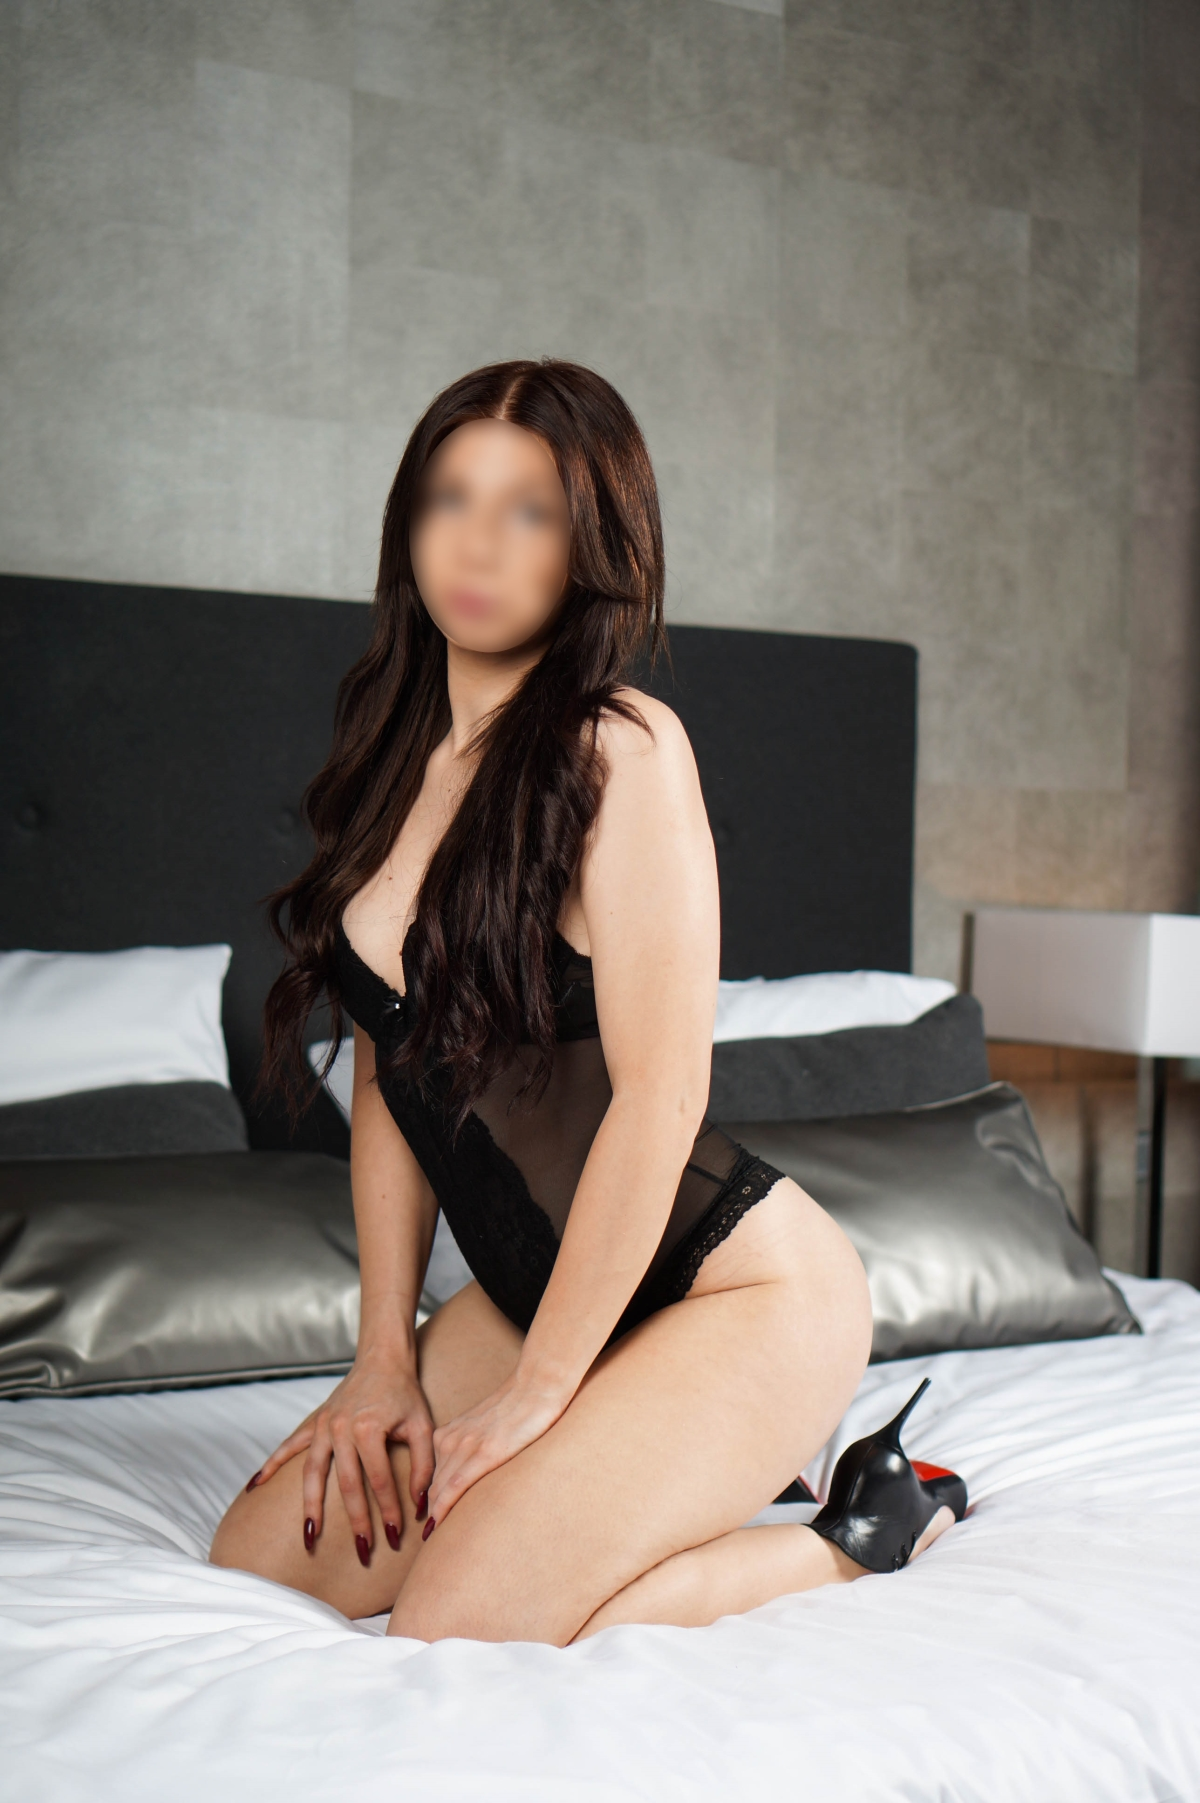 high-end escorts kleine tieten in Workum